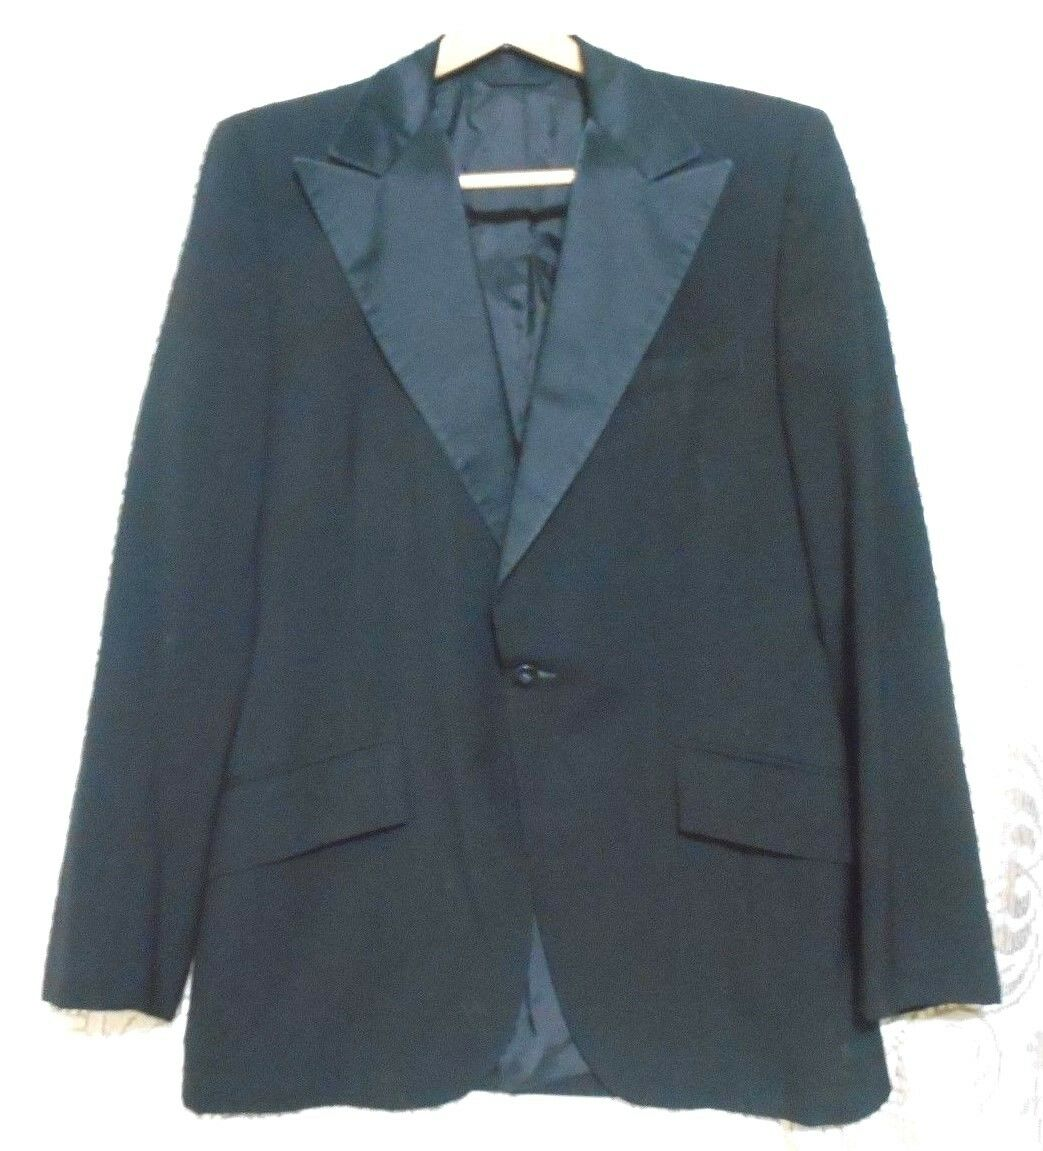 Vintage Black Tuxedo Formal Occasion One Button 38 Reg Jacket made in USA